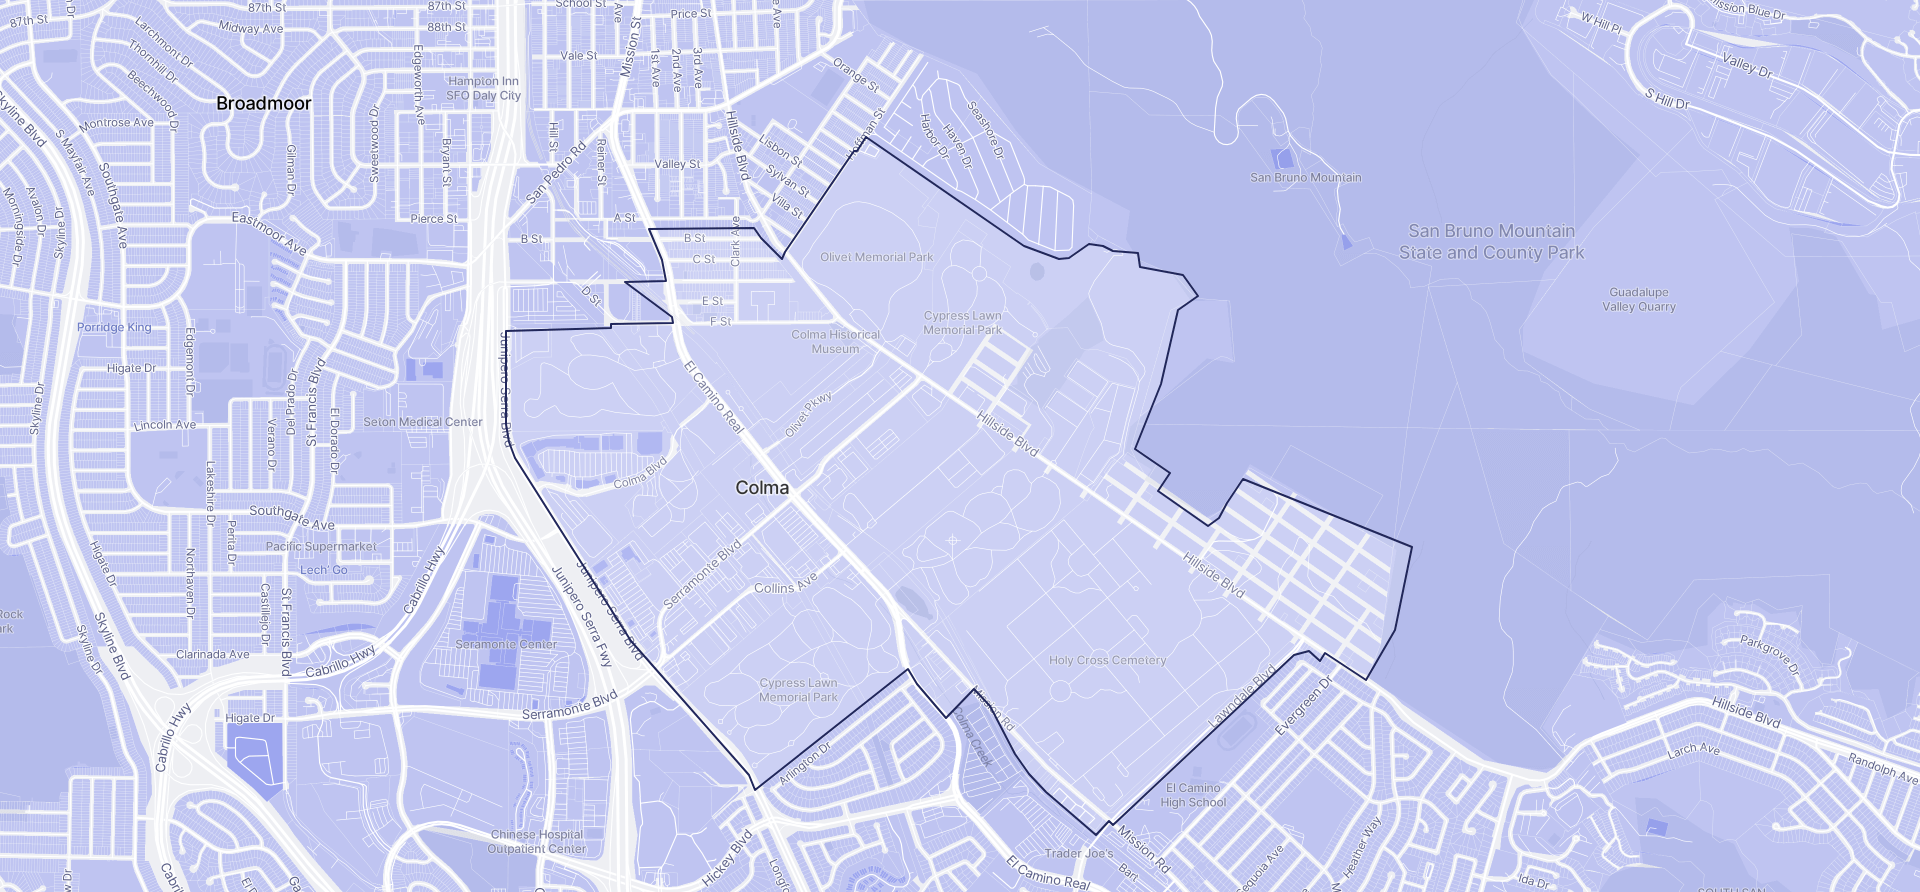 Image of Colma boundaries on a map.